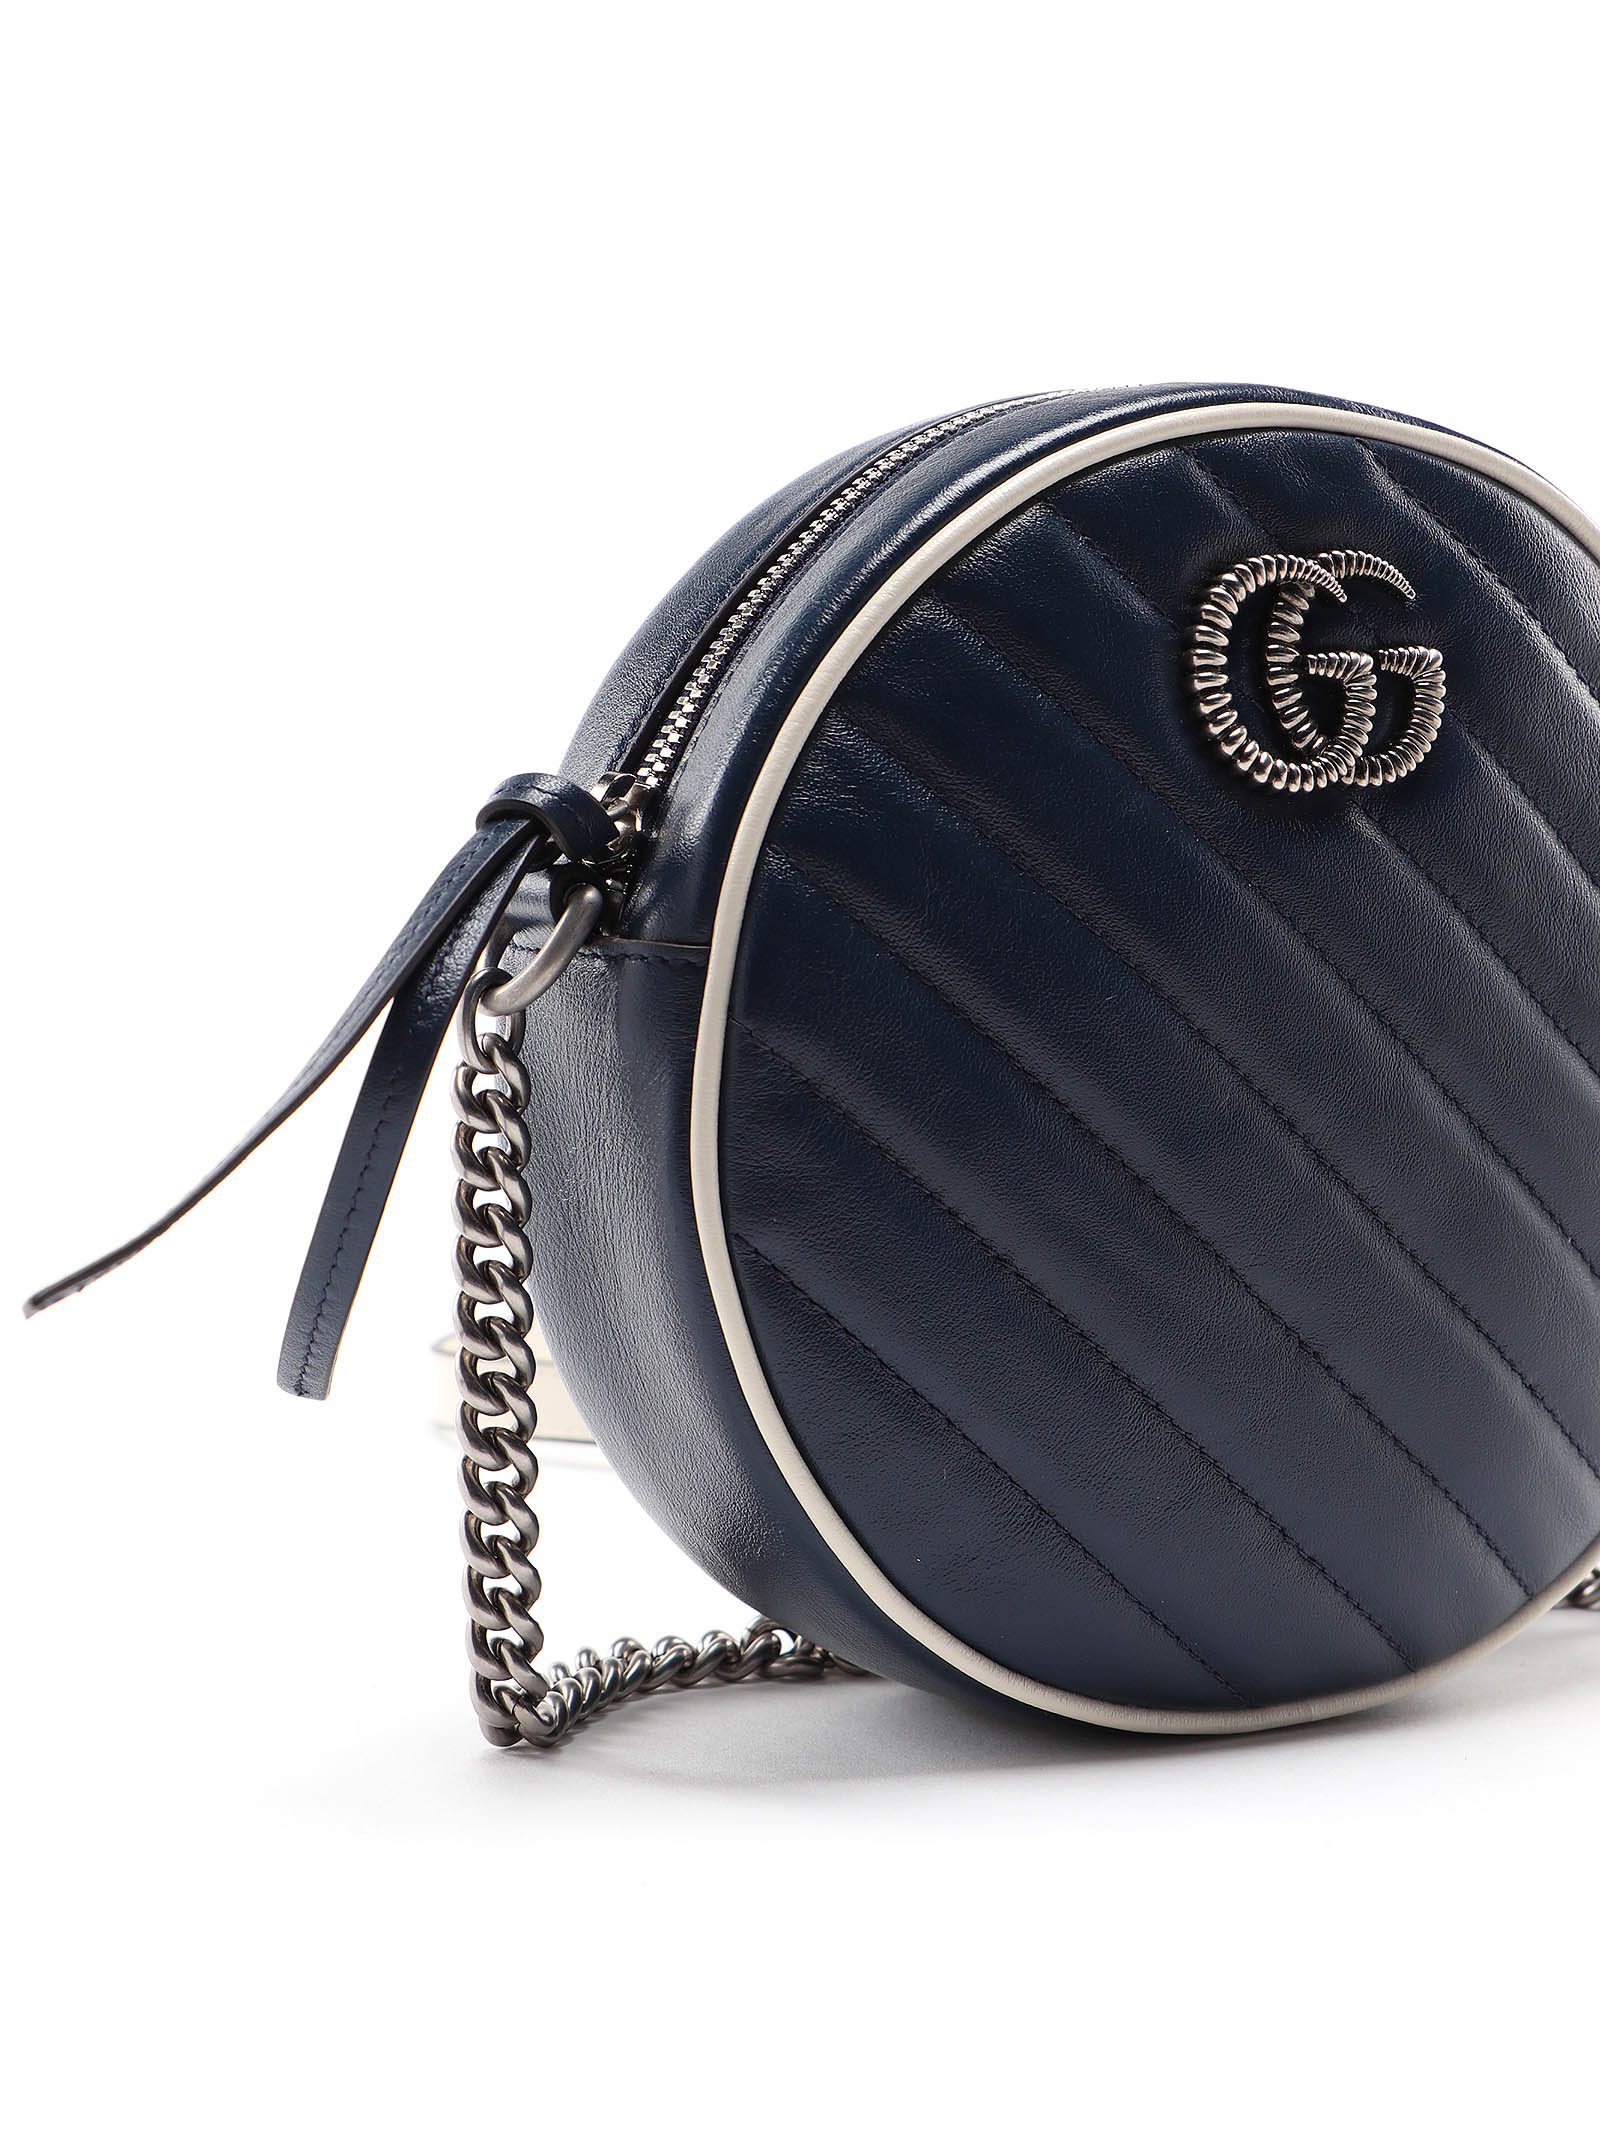 Picture of Gucci | Gg Marmont Round Bag